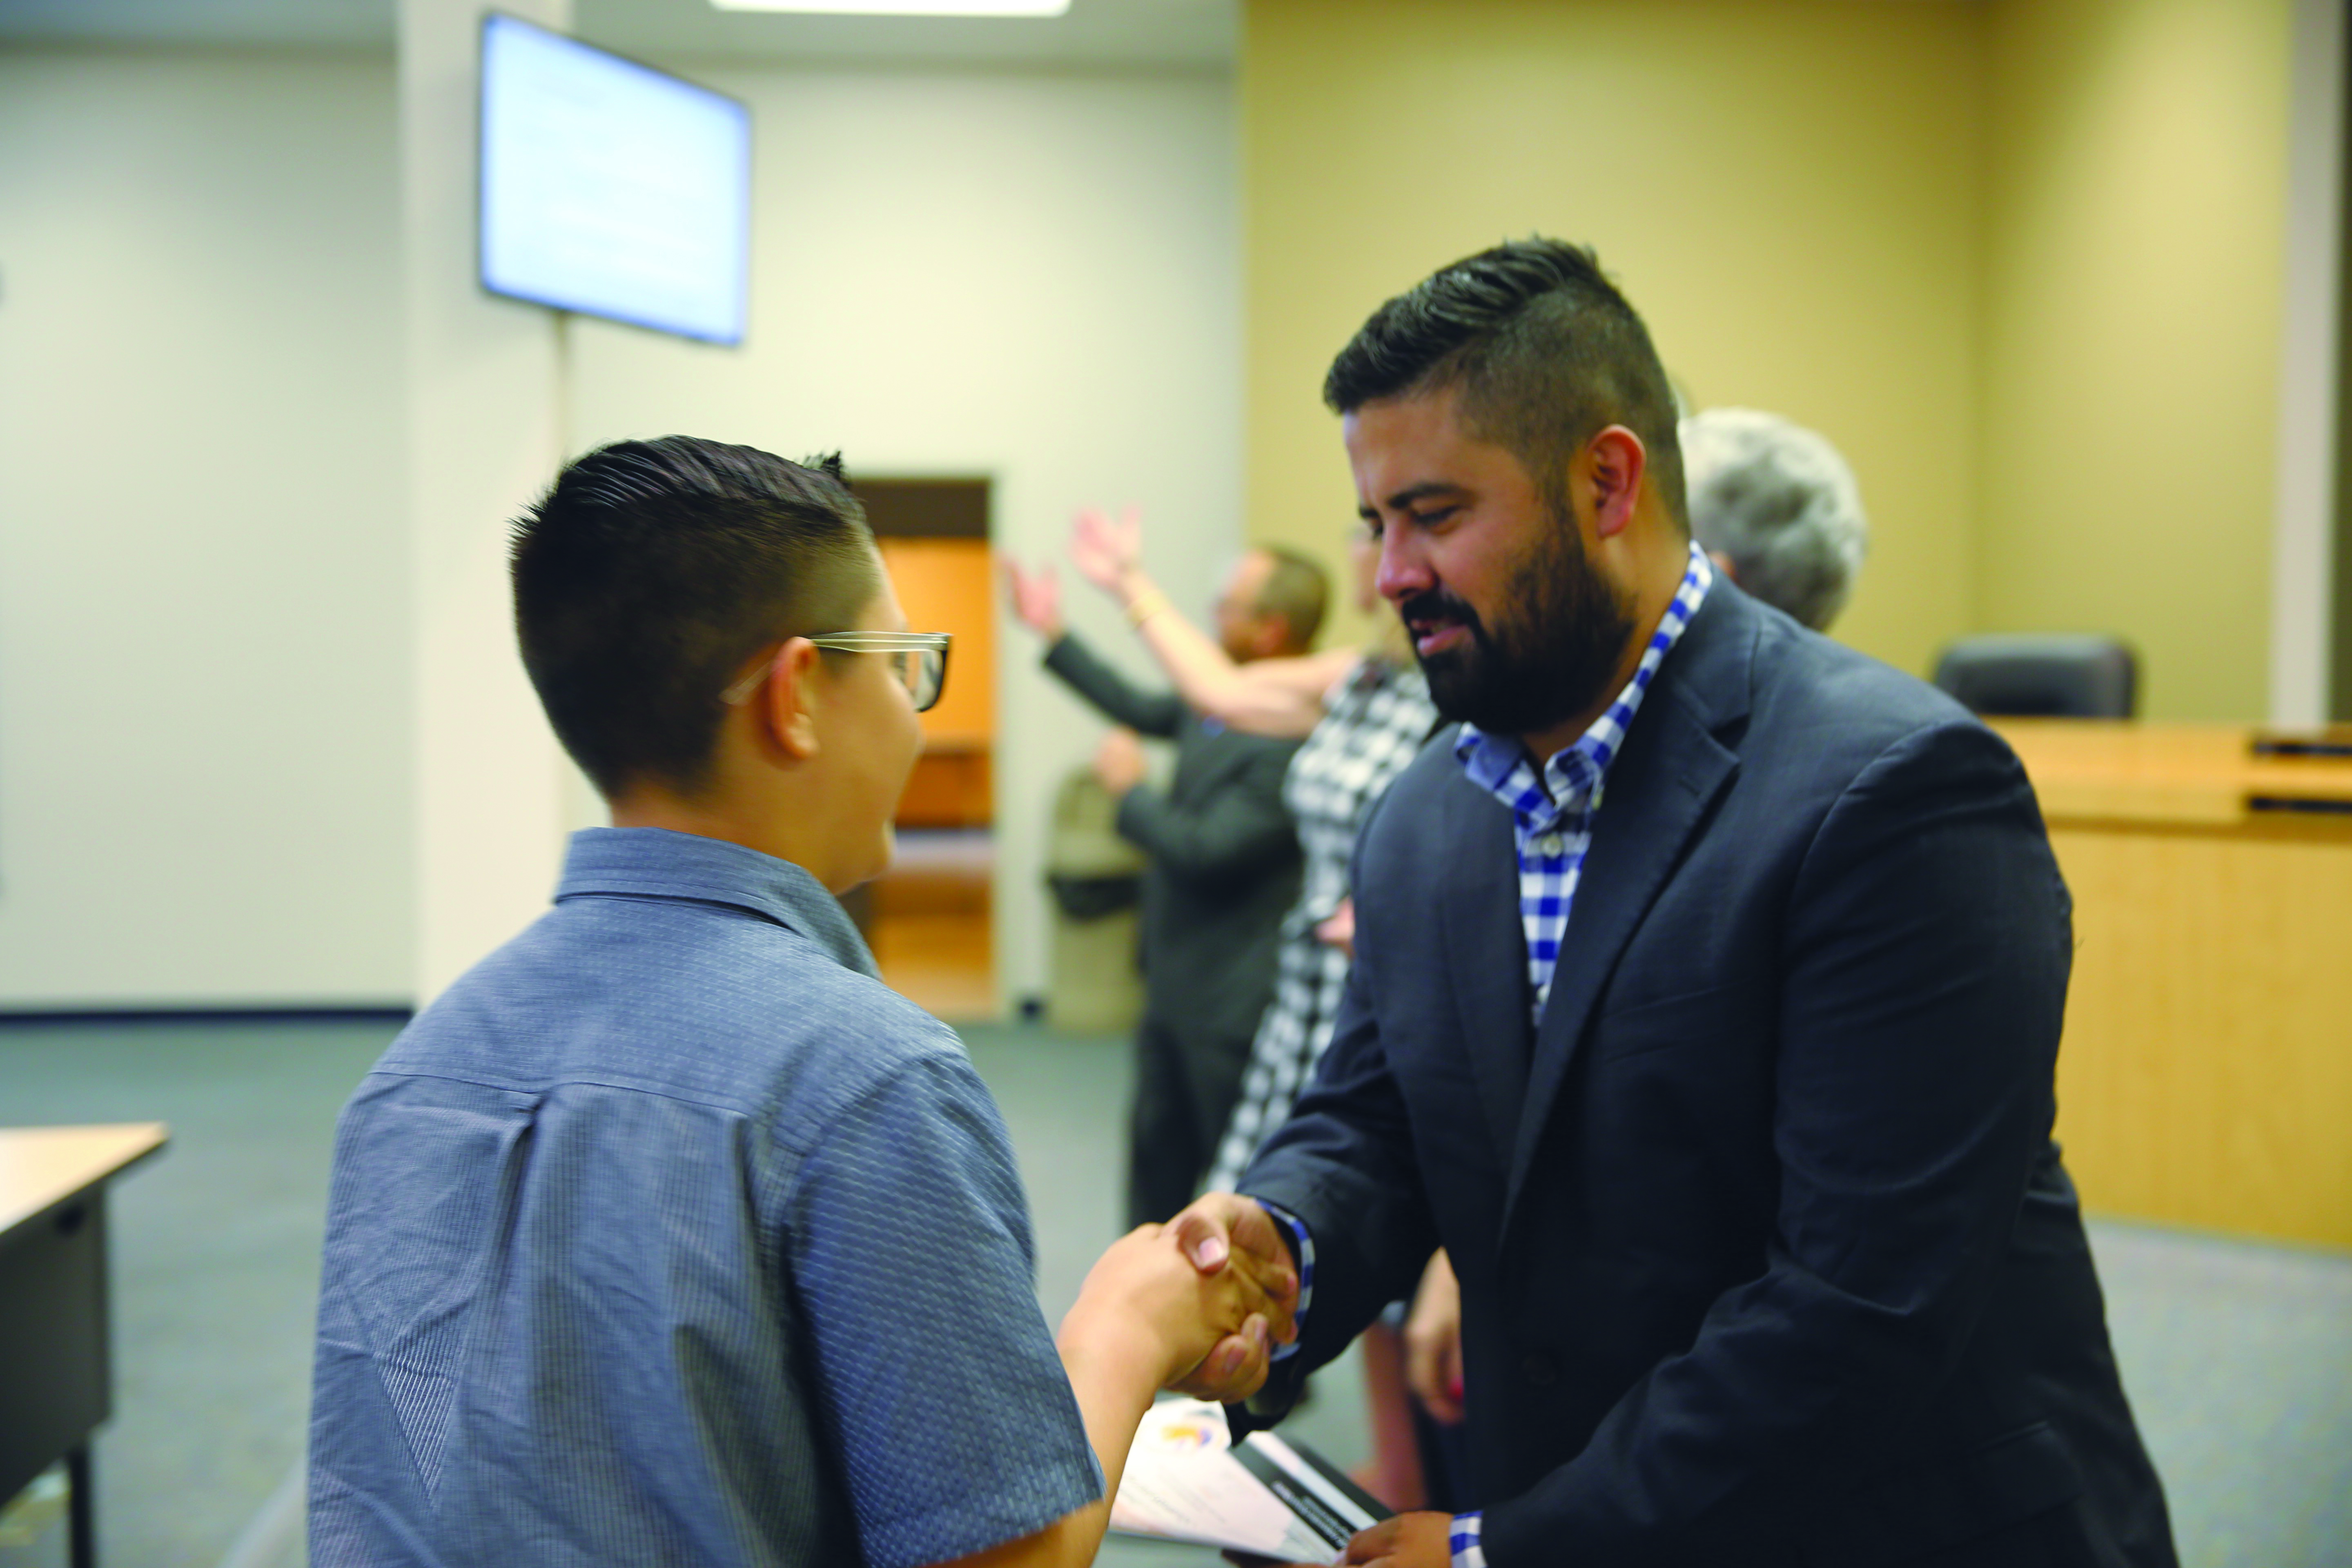 Canutillo ISD's Rodriguez to become first El Pasoan on TASB leadership board since 1990s